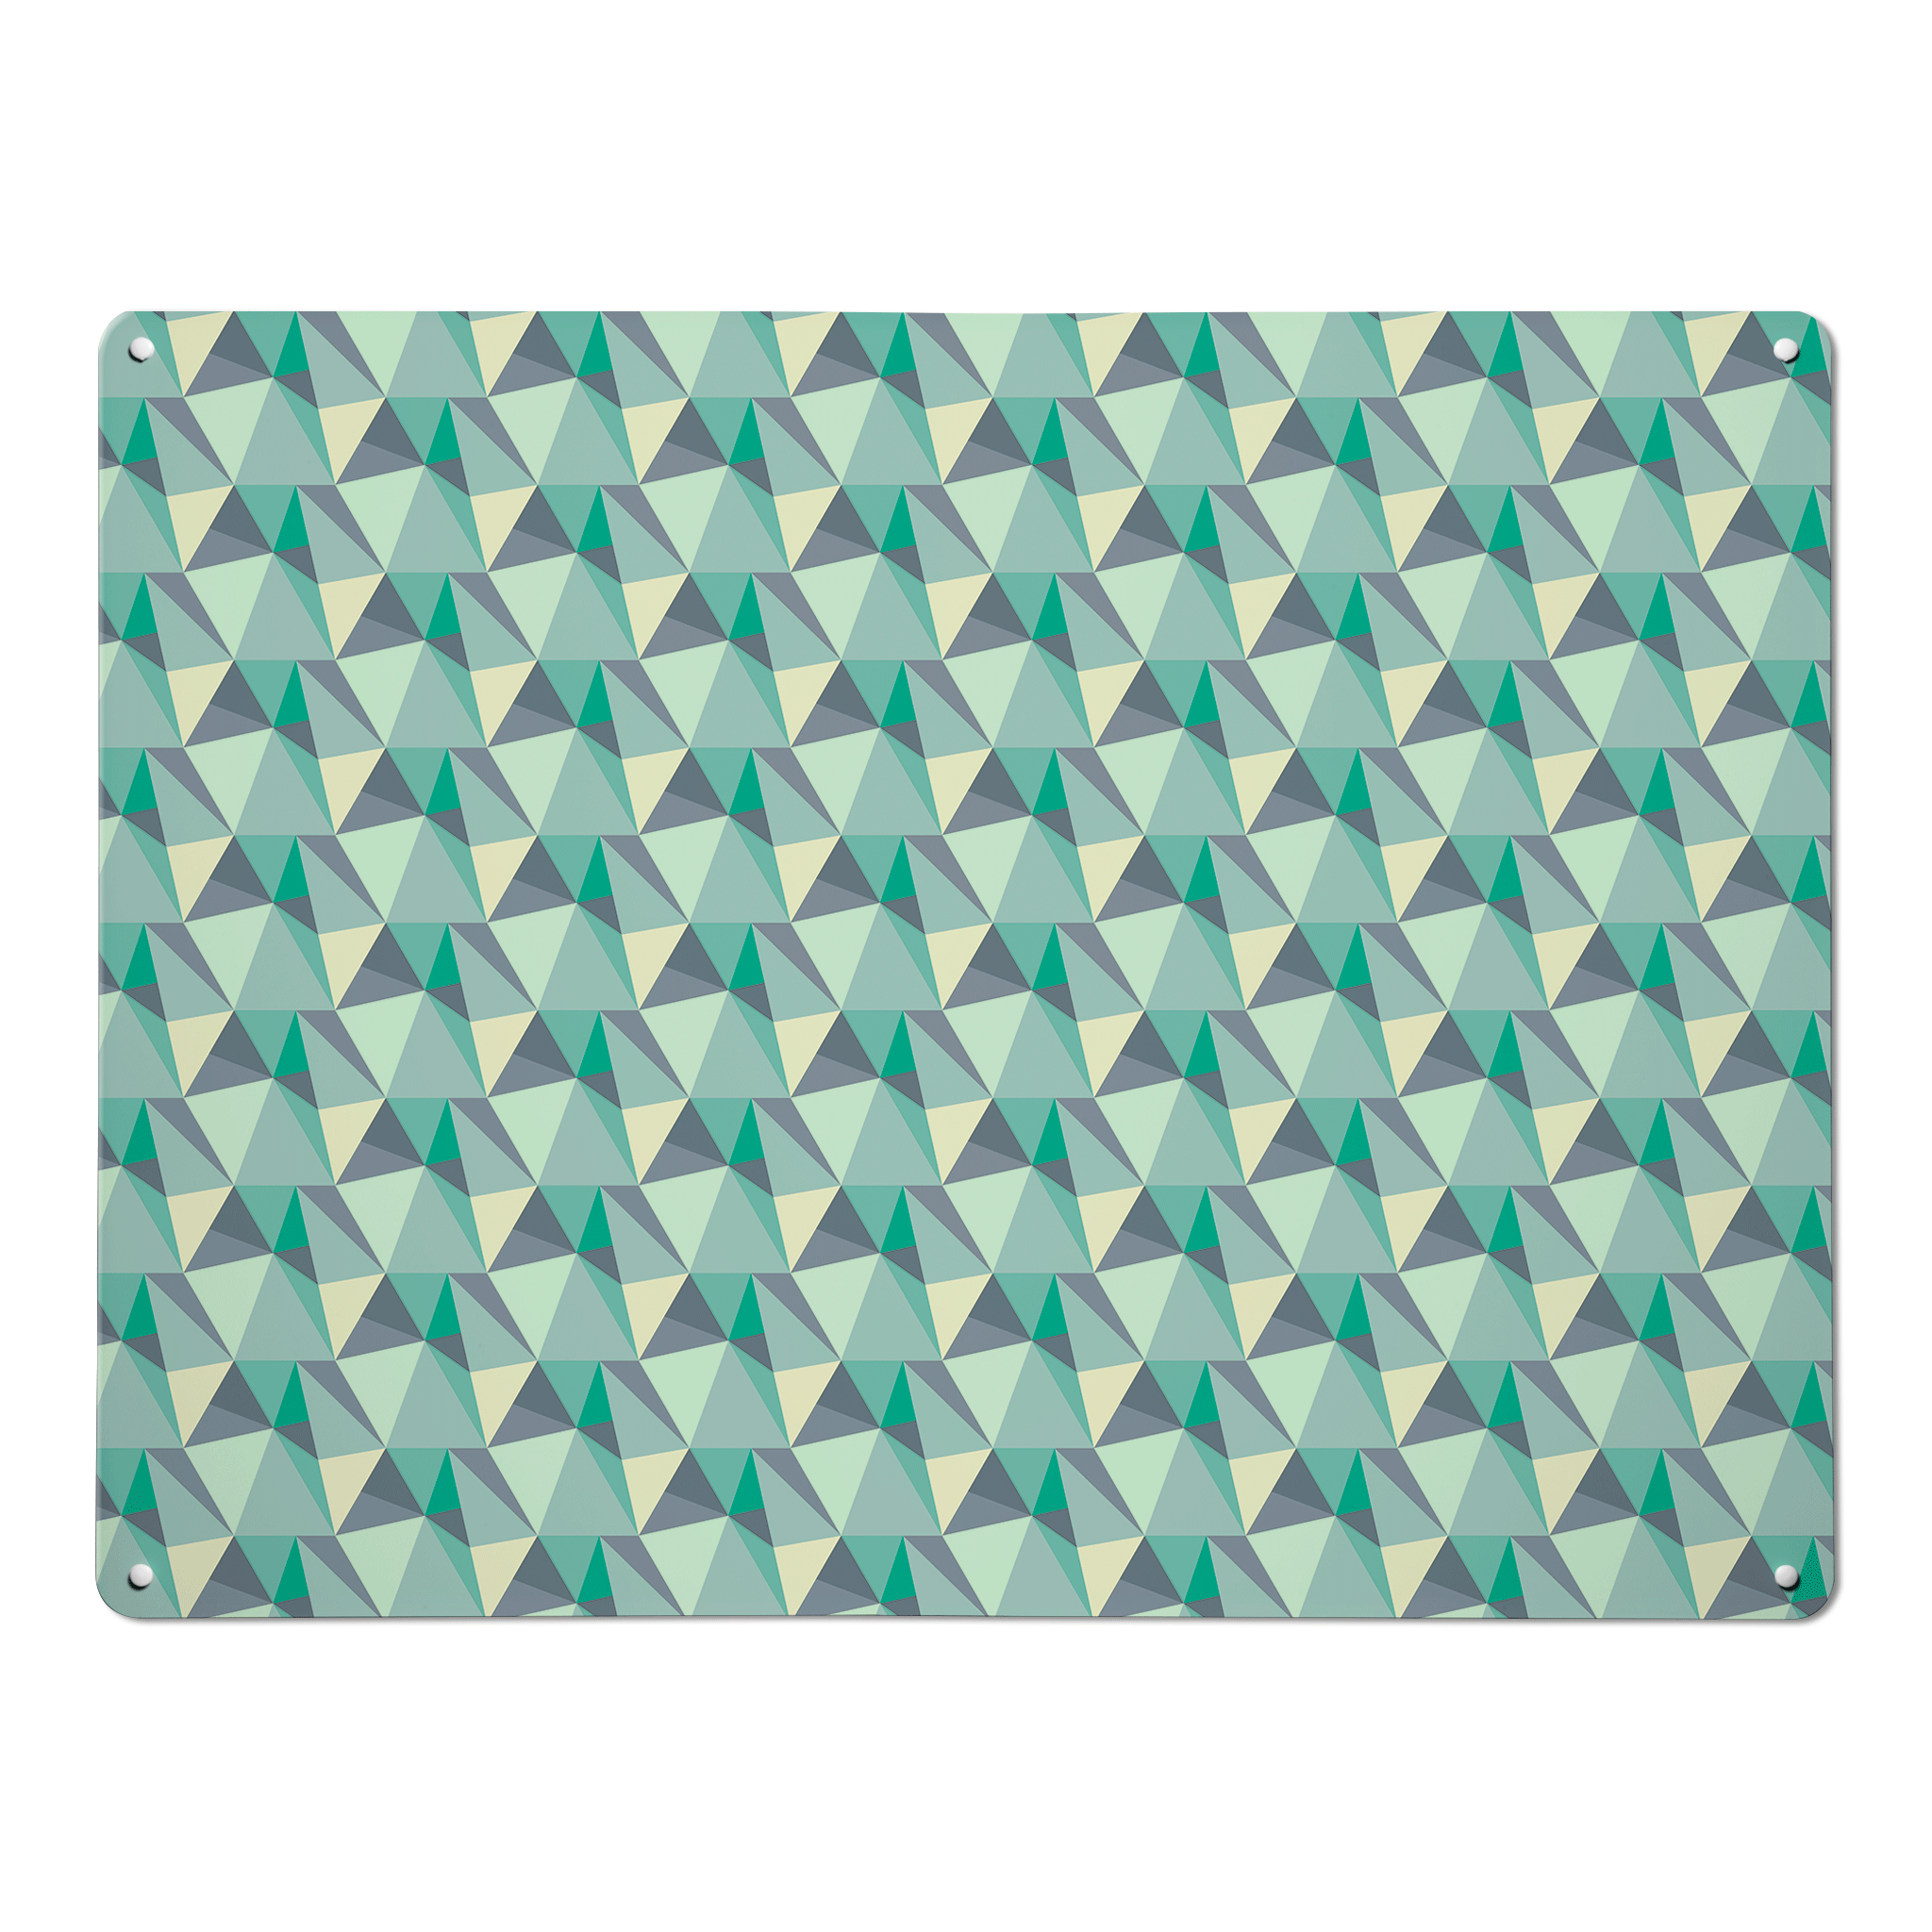 Shards Is A Geometric Pattern Made Up Of Triangles Reminiscent